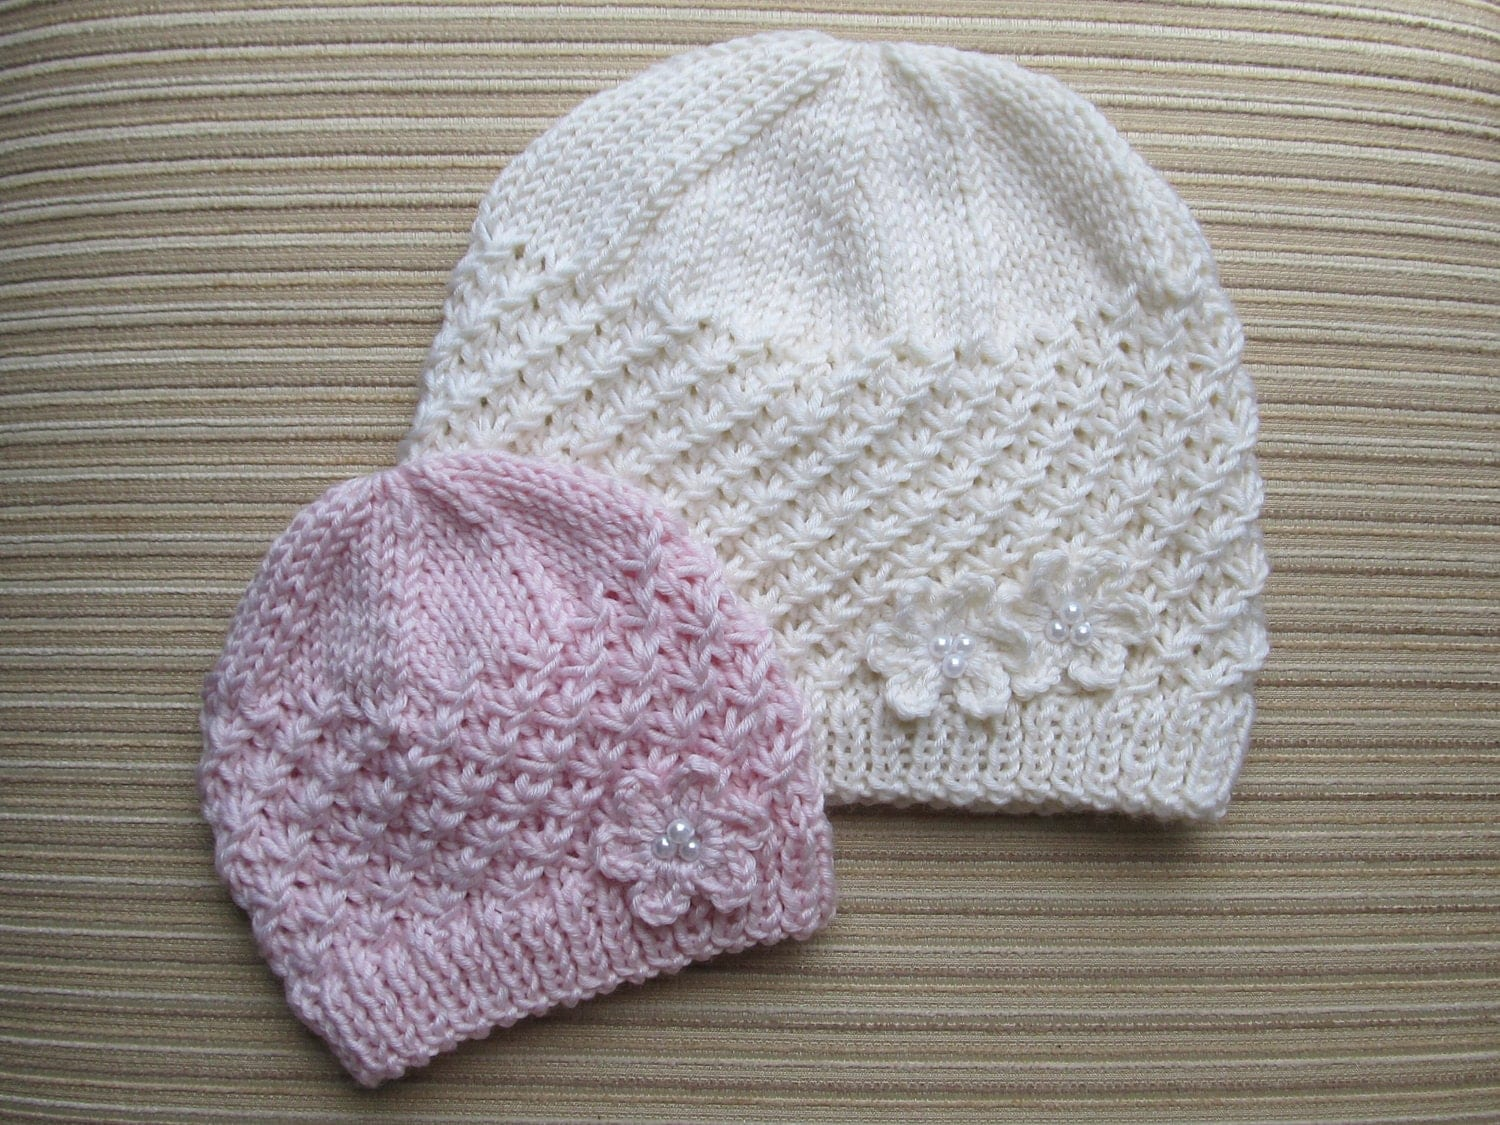 Knitting Pattern For Childrens Hats : Instant Download Knitting Pattern 62 Stars Stitch Hat in